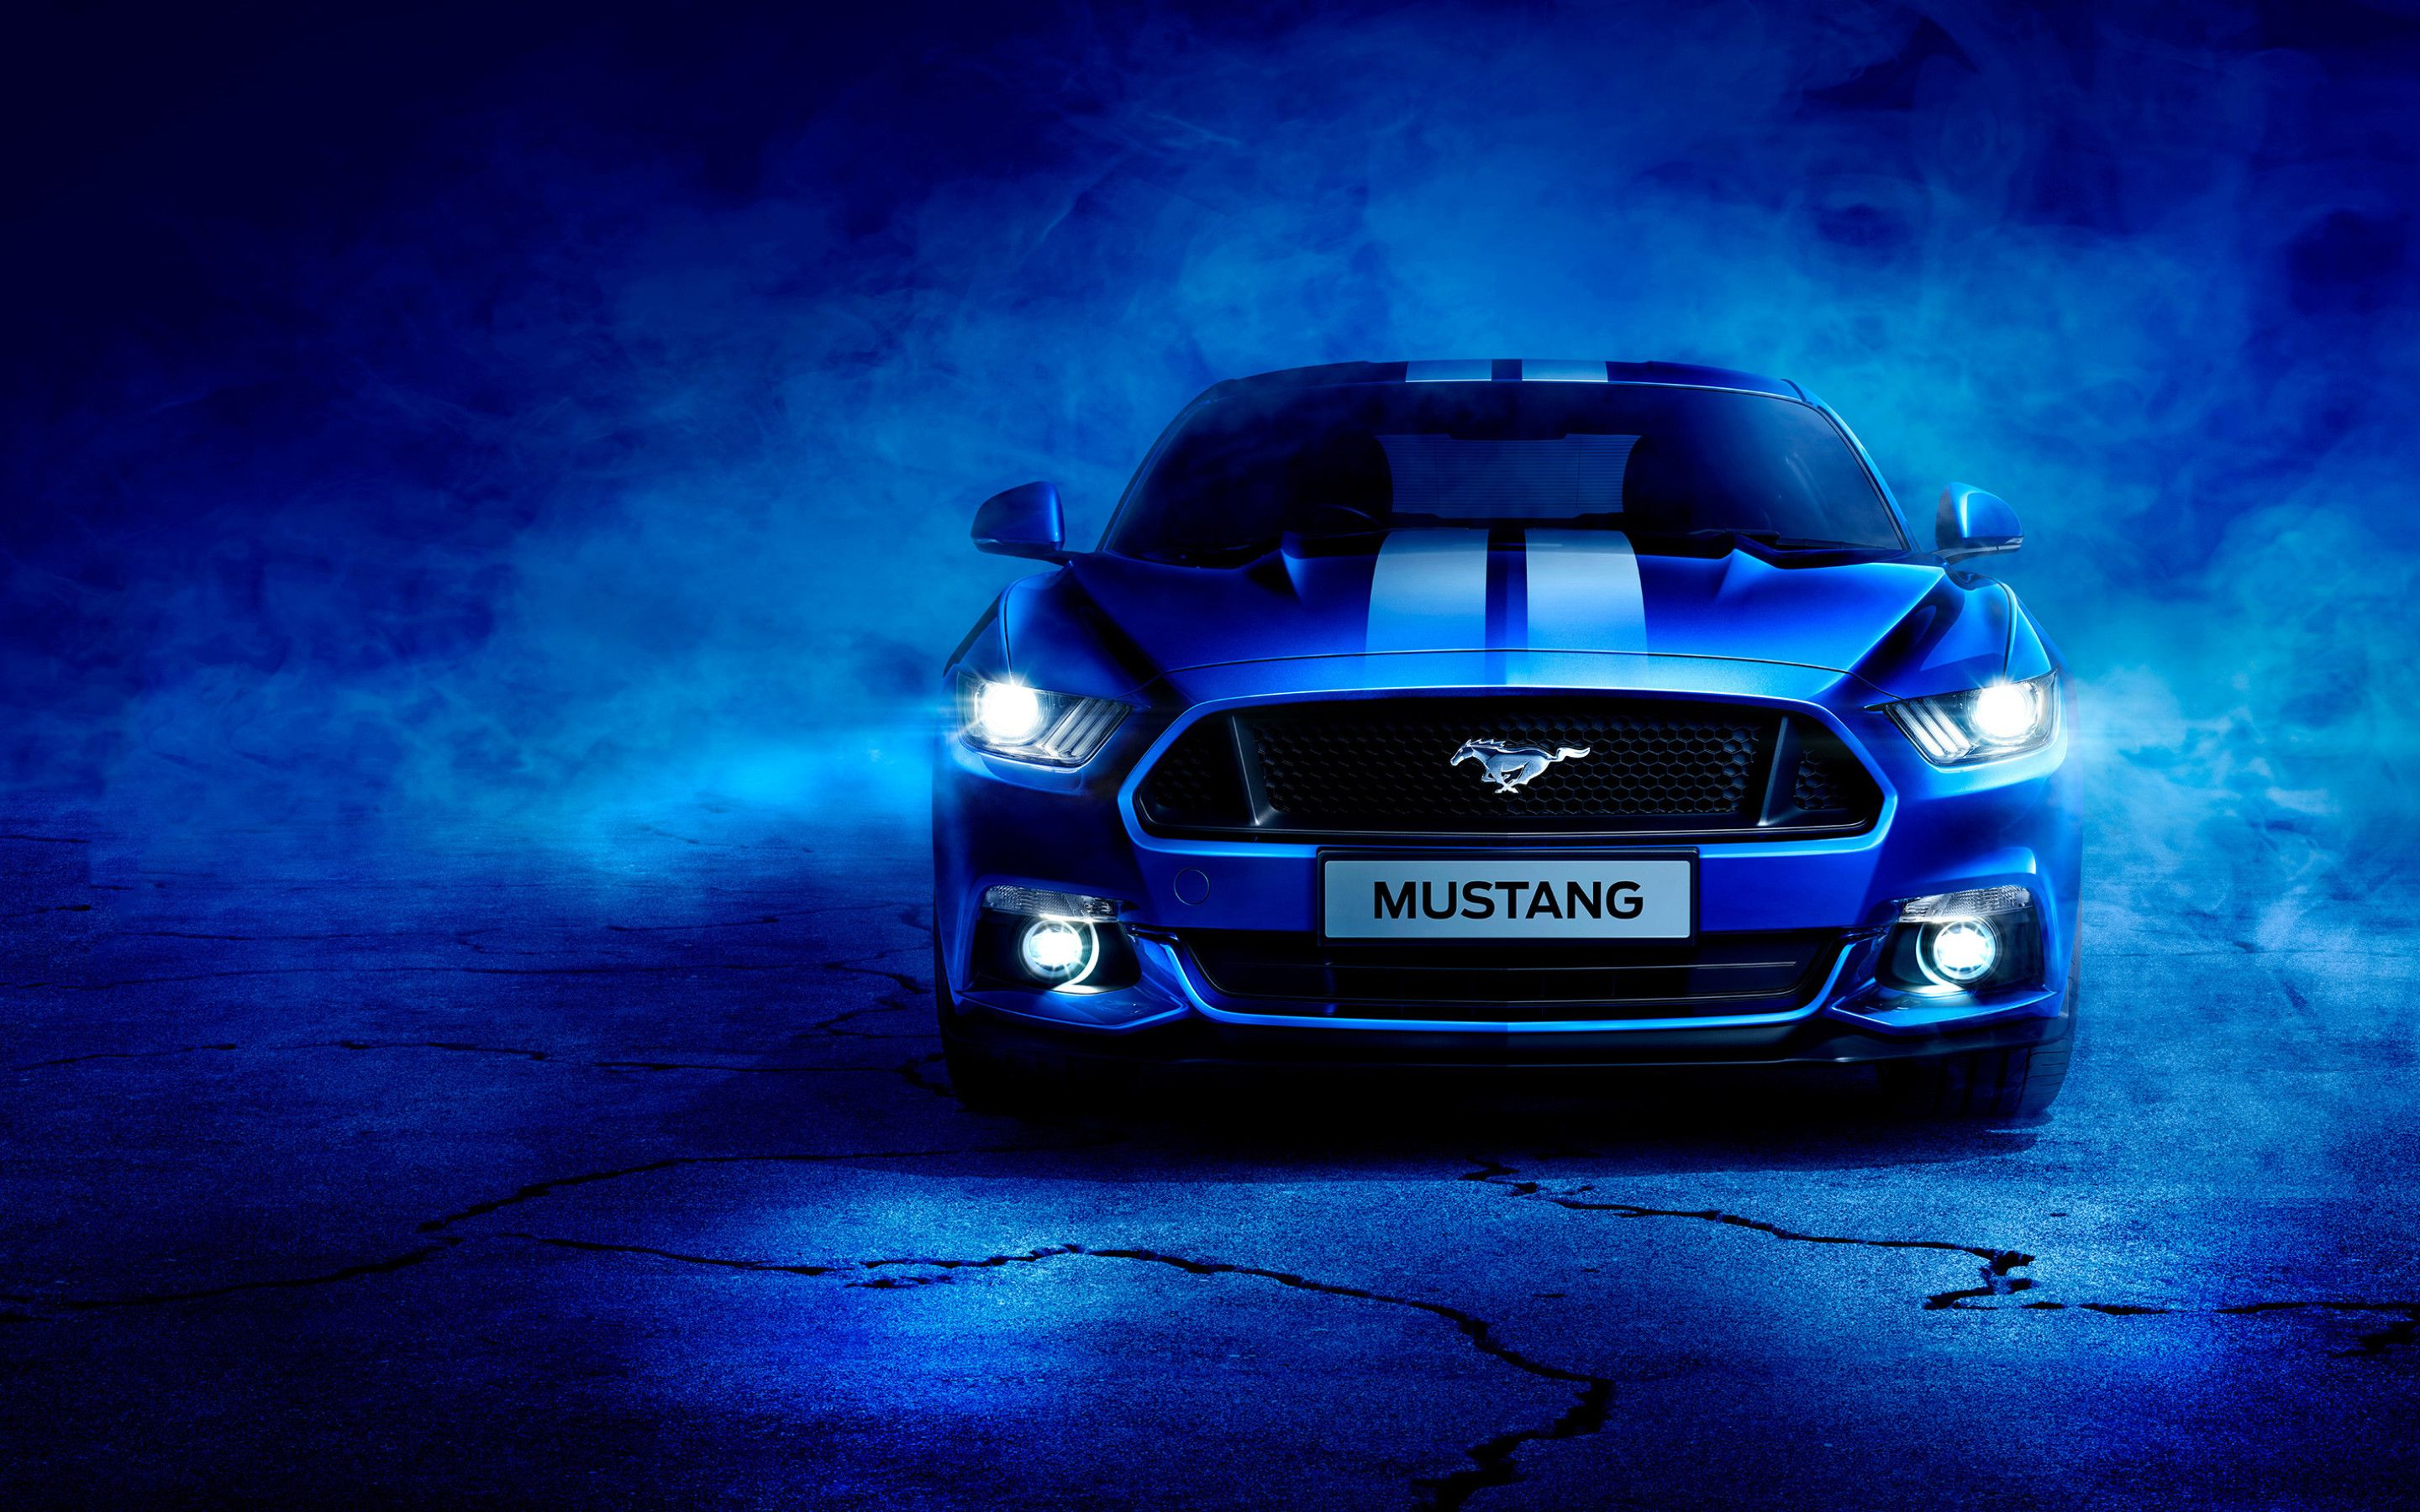 Blue Mustang Wallpapers   Top Blue Mustang Backgrounds 2880x1800